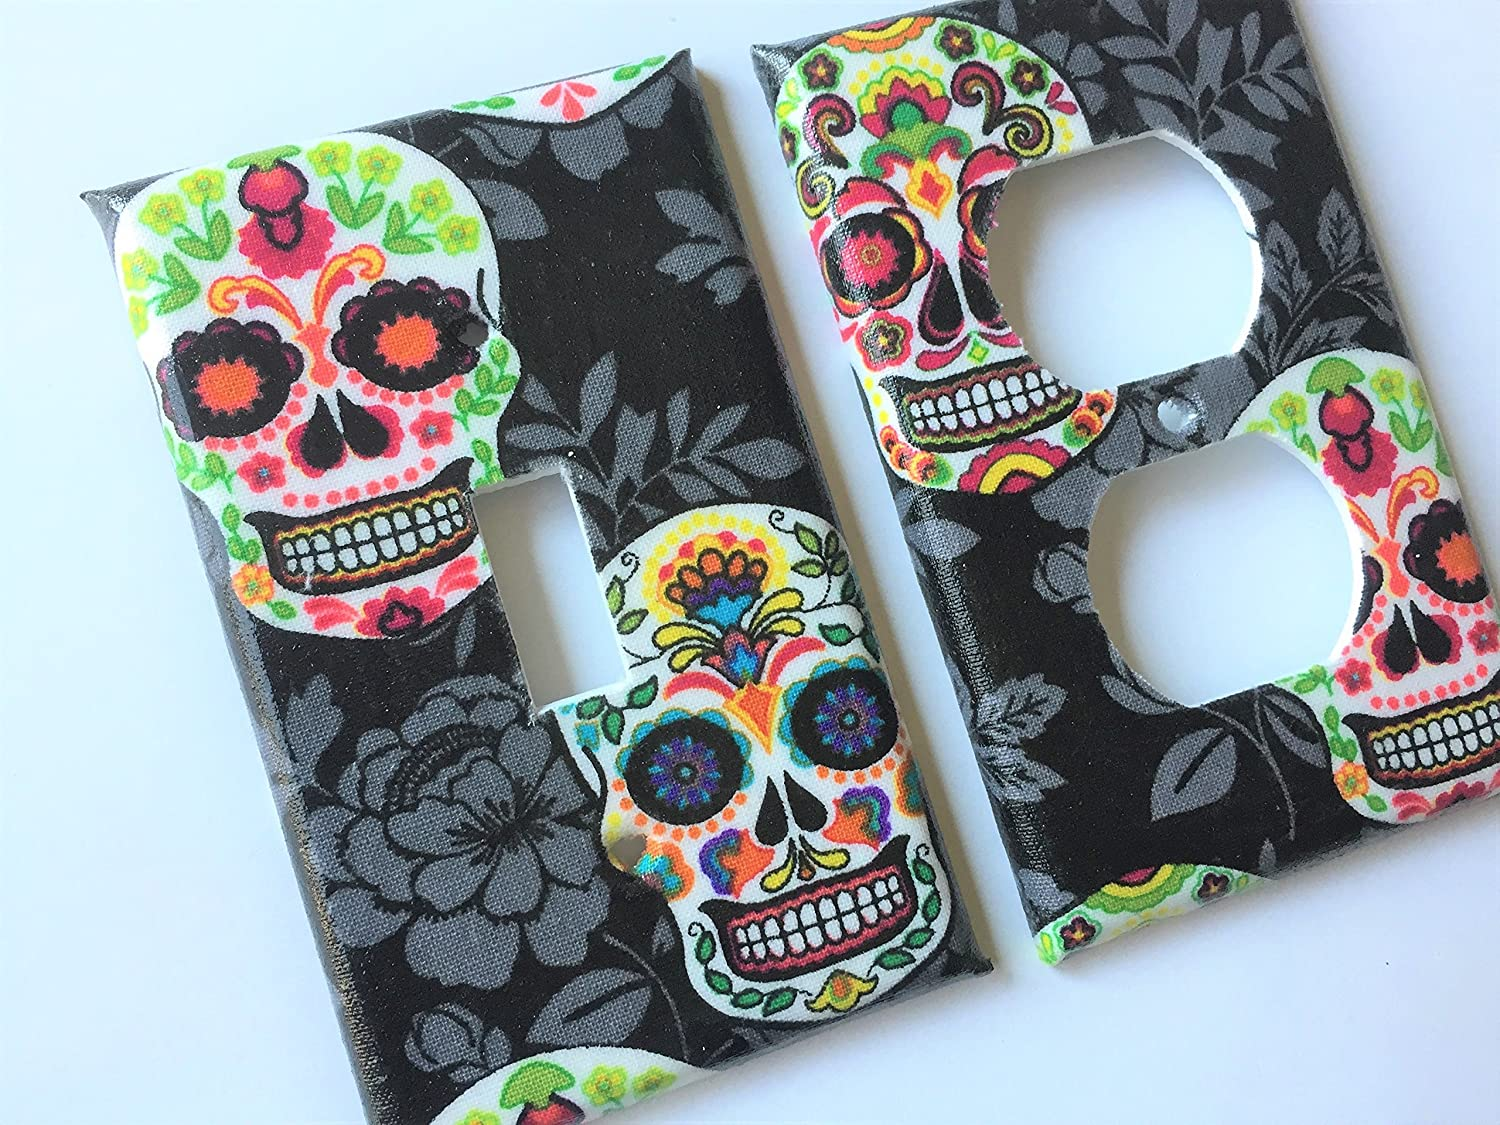 Sugar Skull Light Switch Cover Day of The Dead - Various Size Light Switchplates Offered